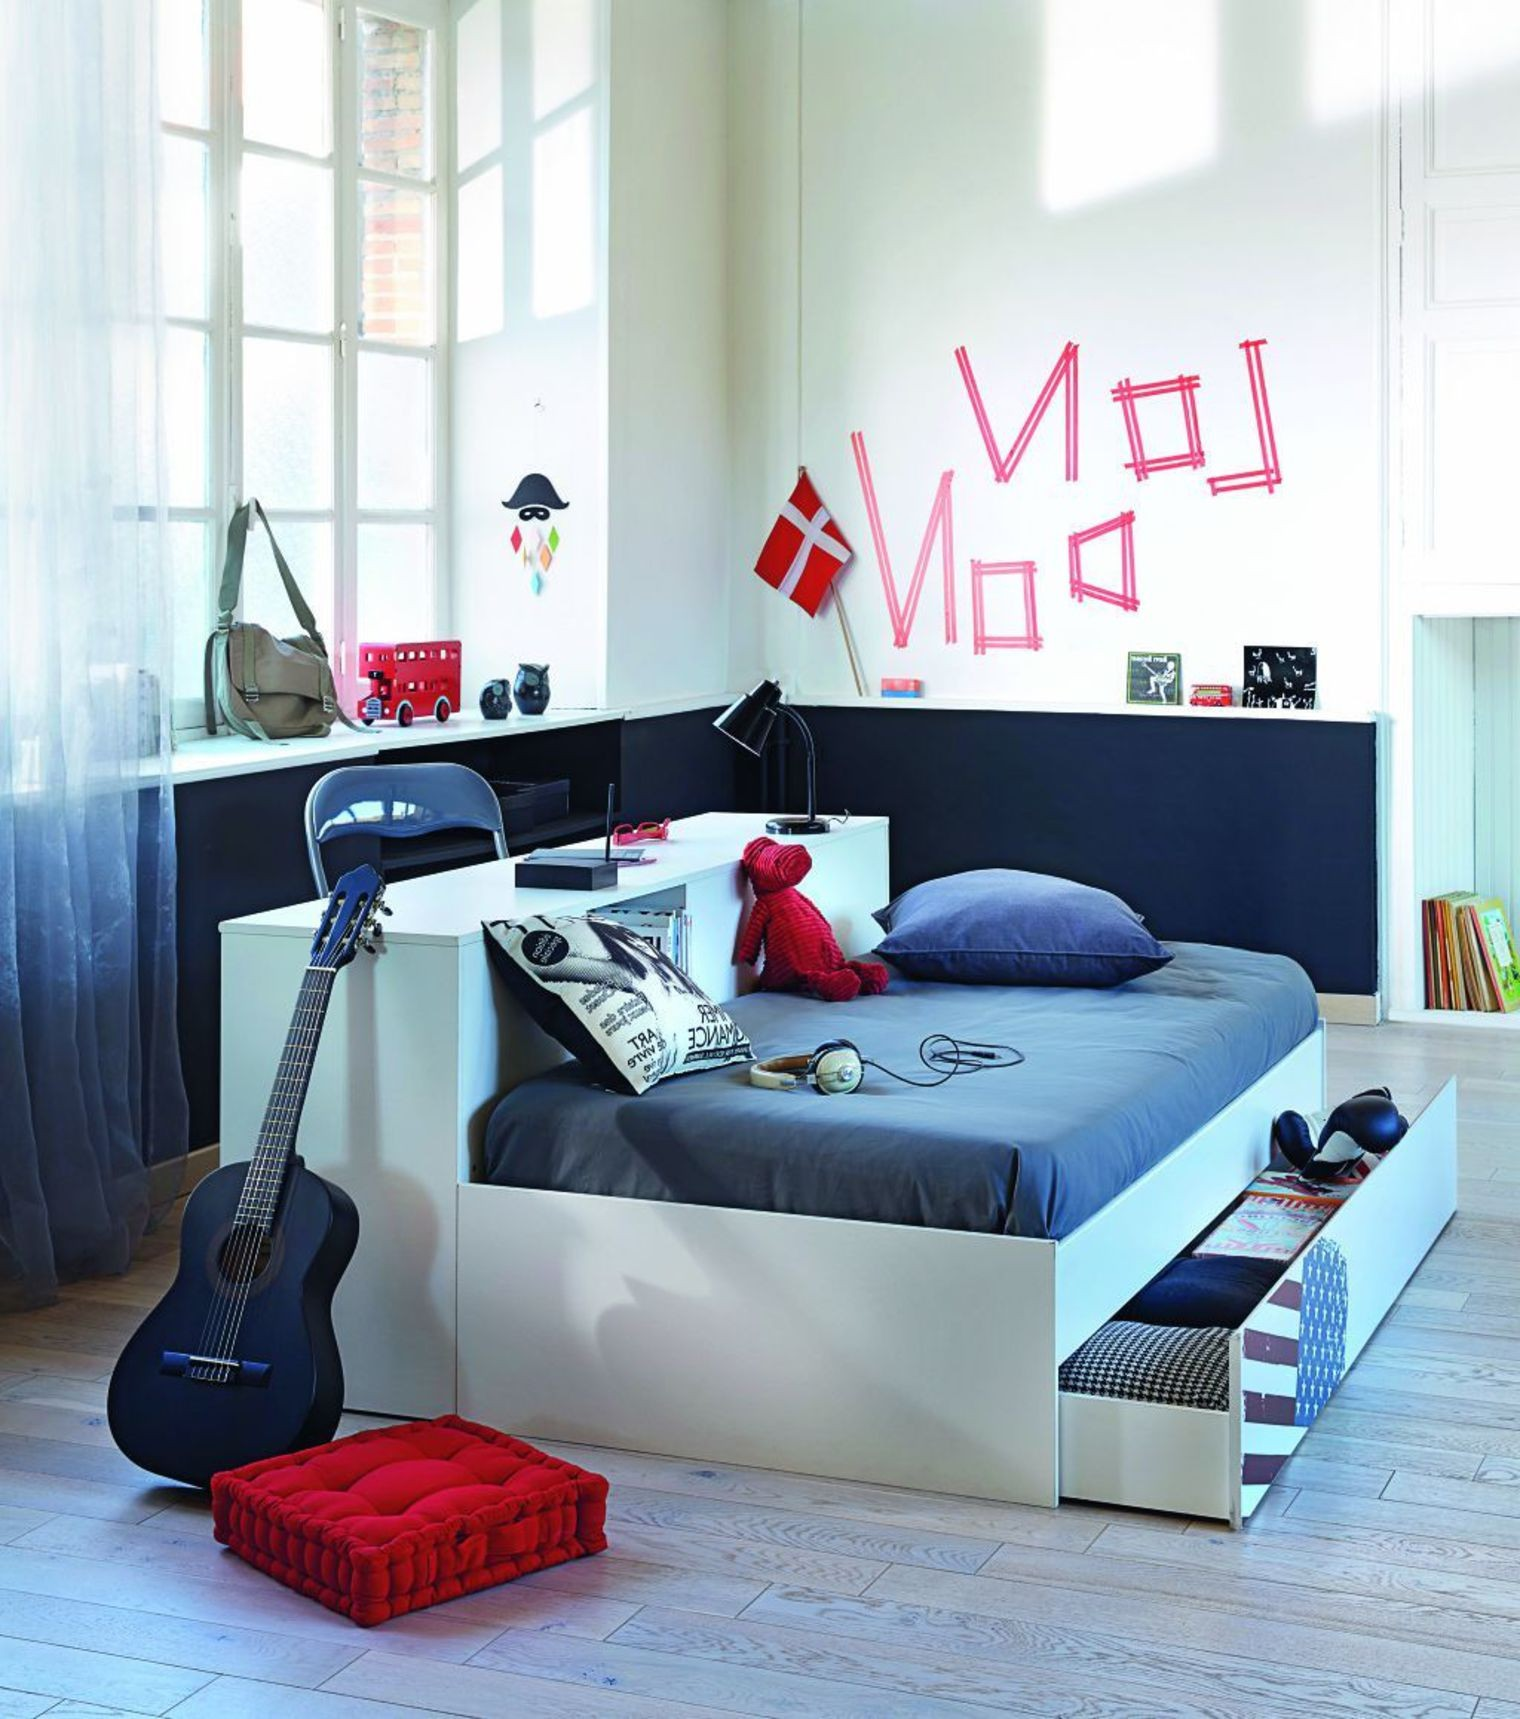 chambre ado ikea free chambre with chambre ado ikea trendy sexy chambre ado chambre ado fille. Black Bedroom Furniture Sets. Home Design Ideas